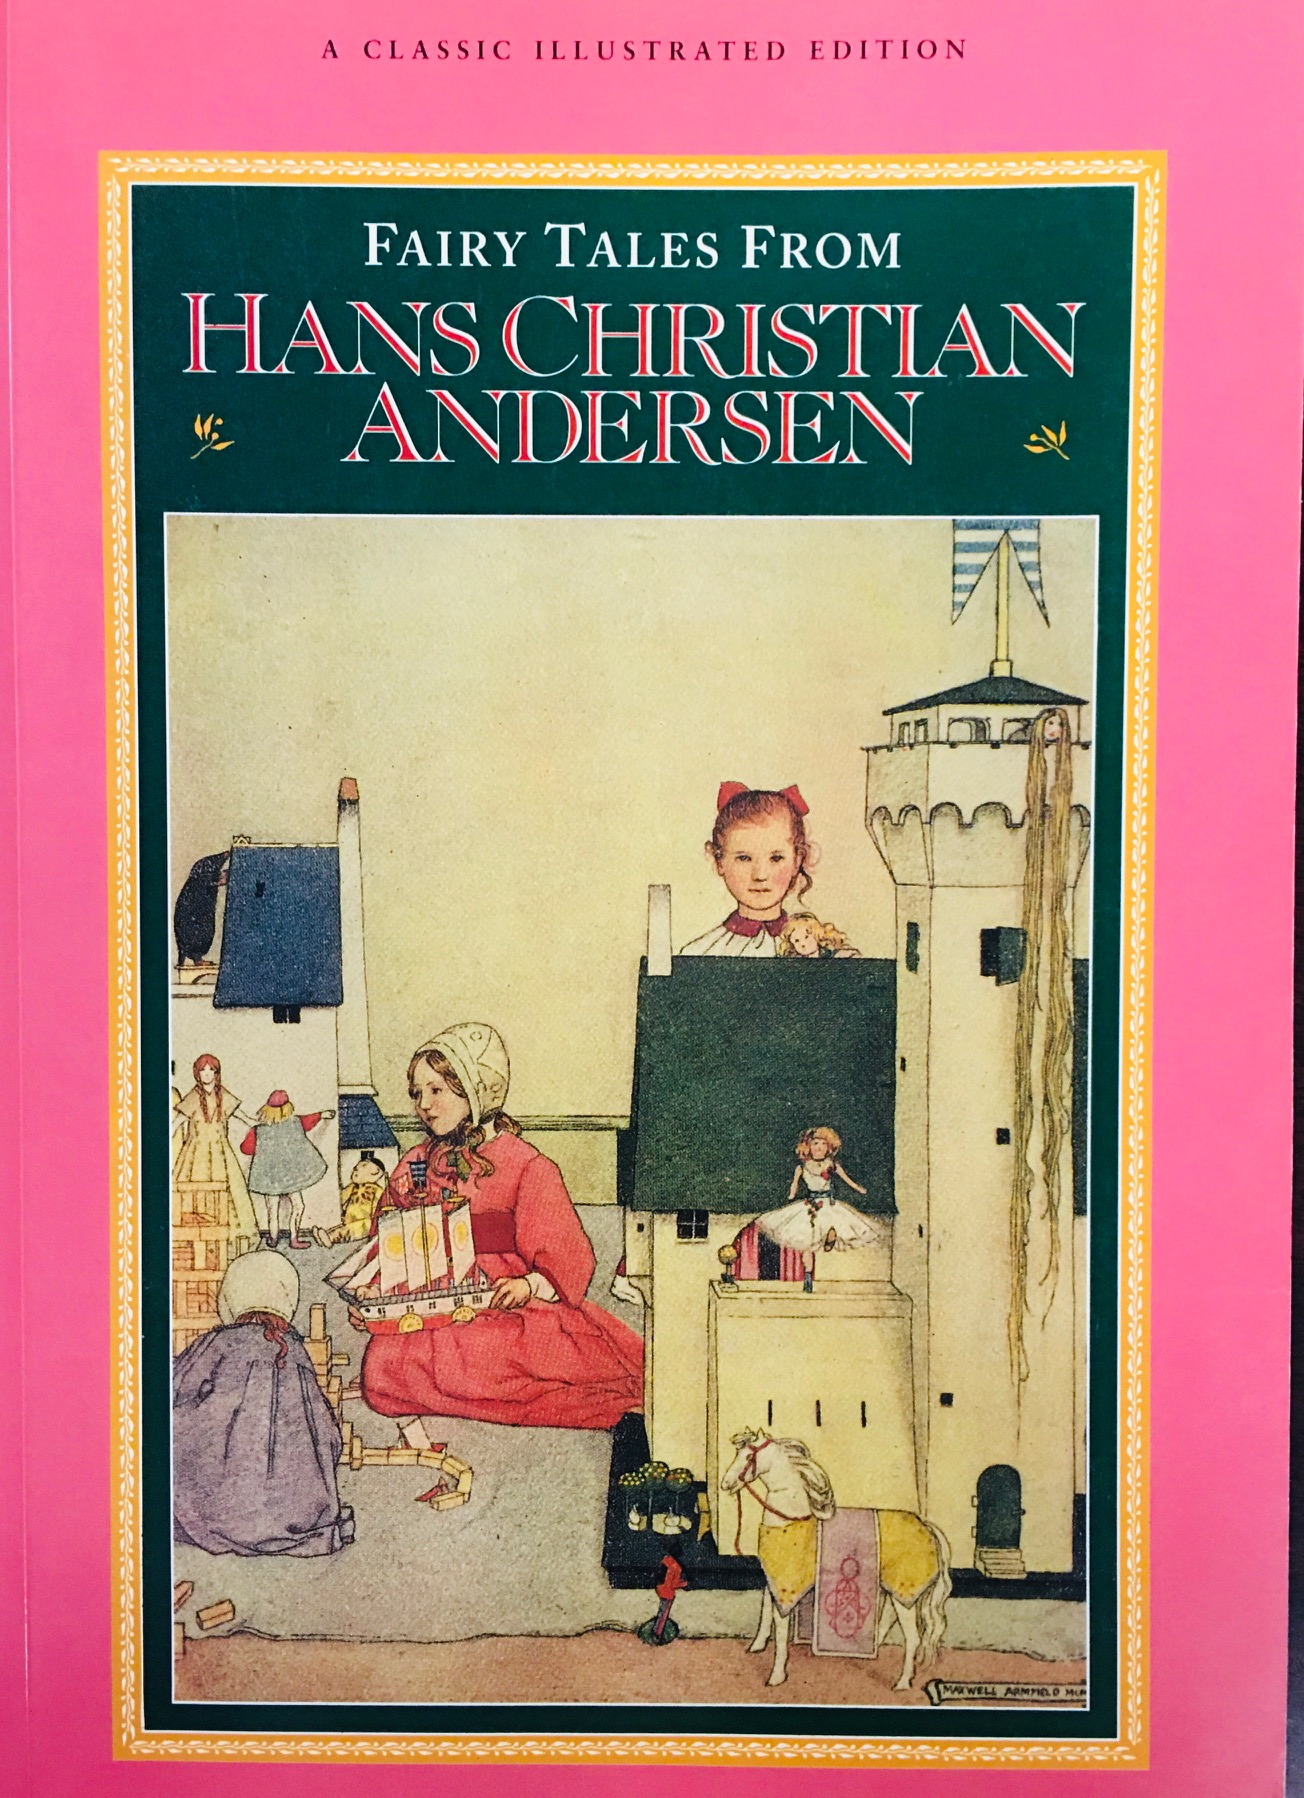 Image for Fairy Tales from Hans Christian Andersen (A Classic Illustrated Edition)